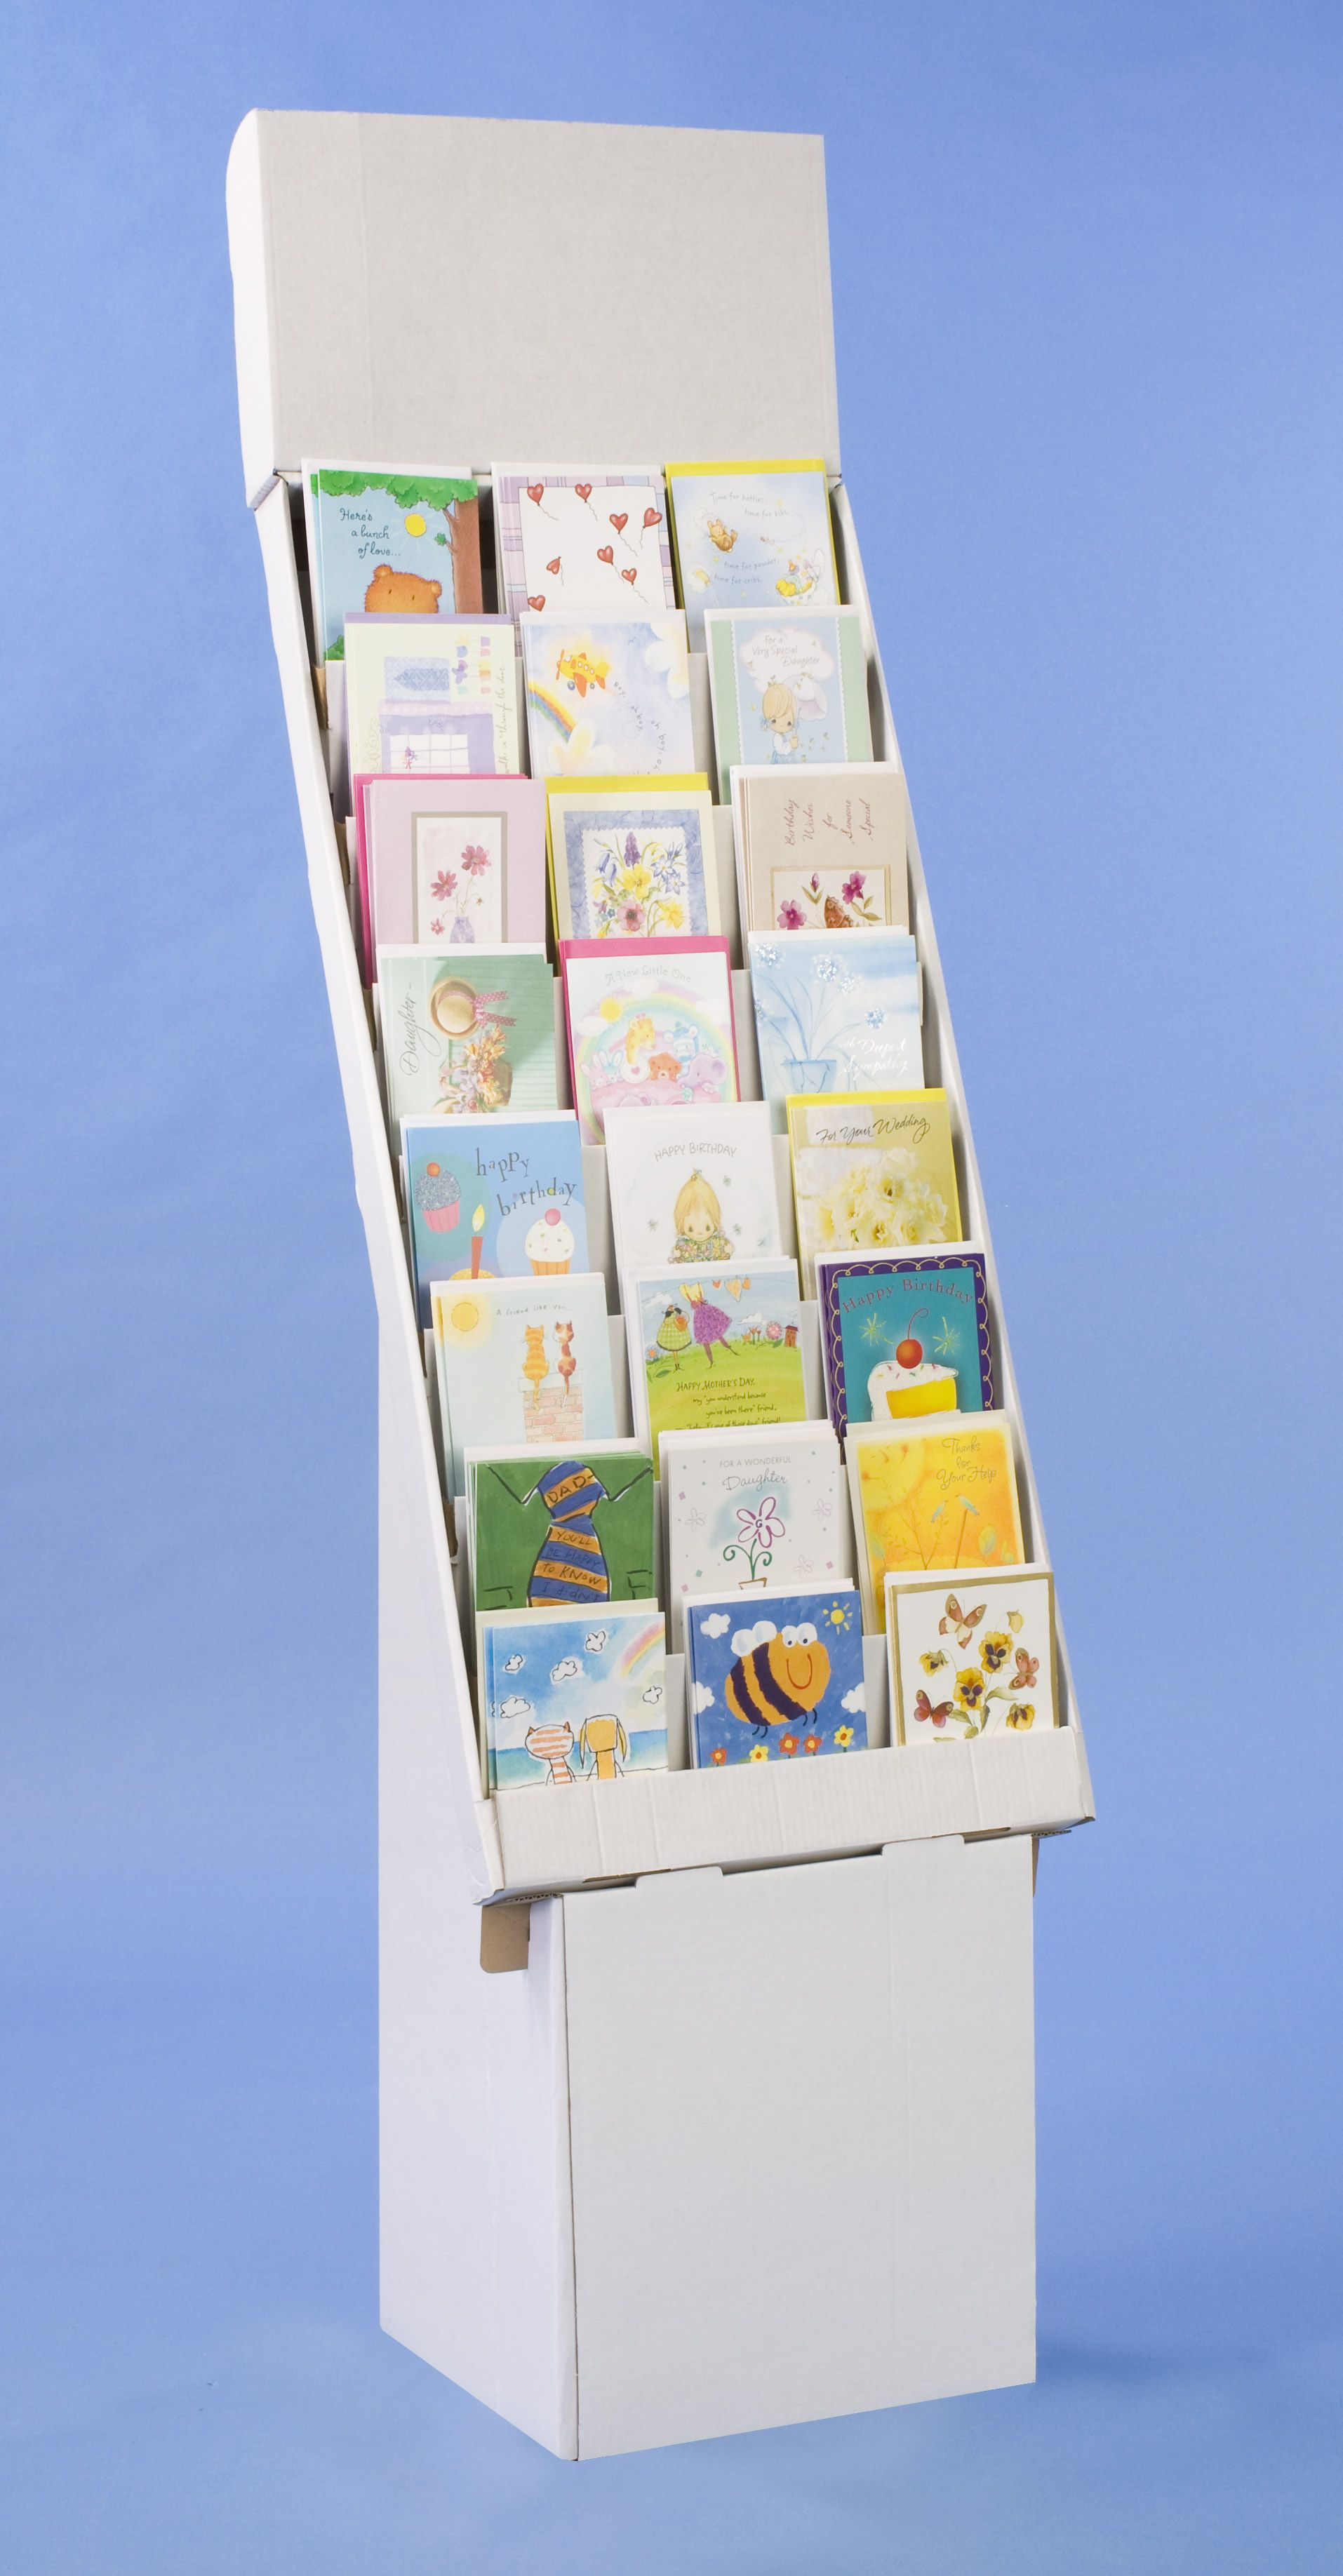 8 tiered cardboard greeting card display for floor removable header 8 tiered cardboard greeting card display for floor removable header white m4hsunfo Gallery